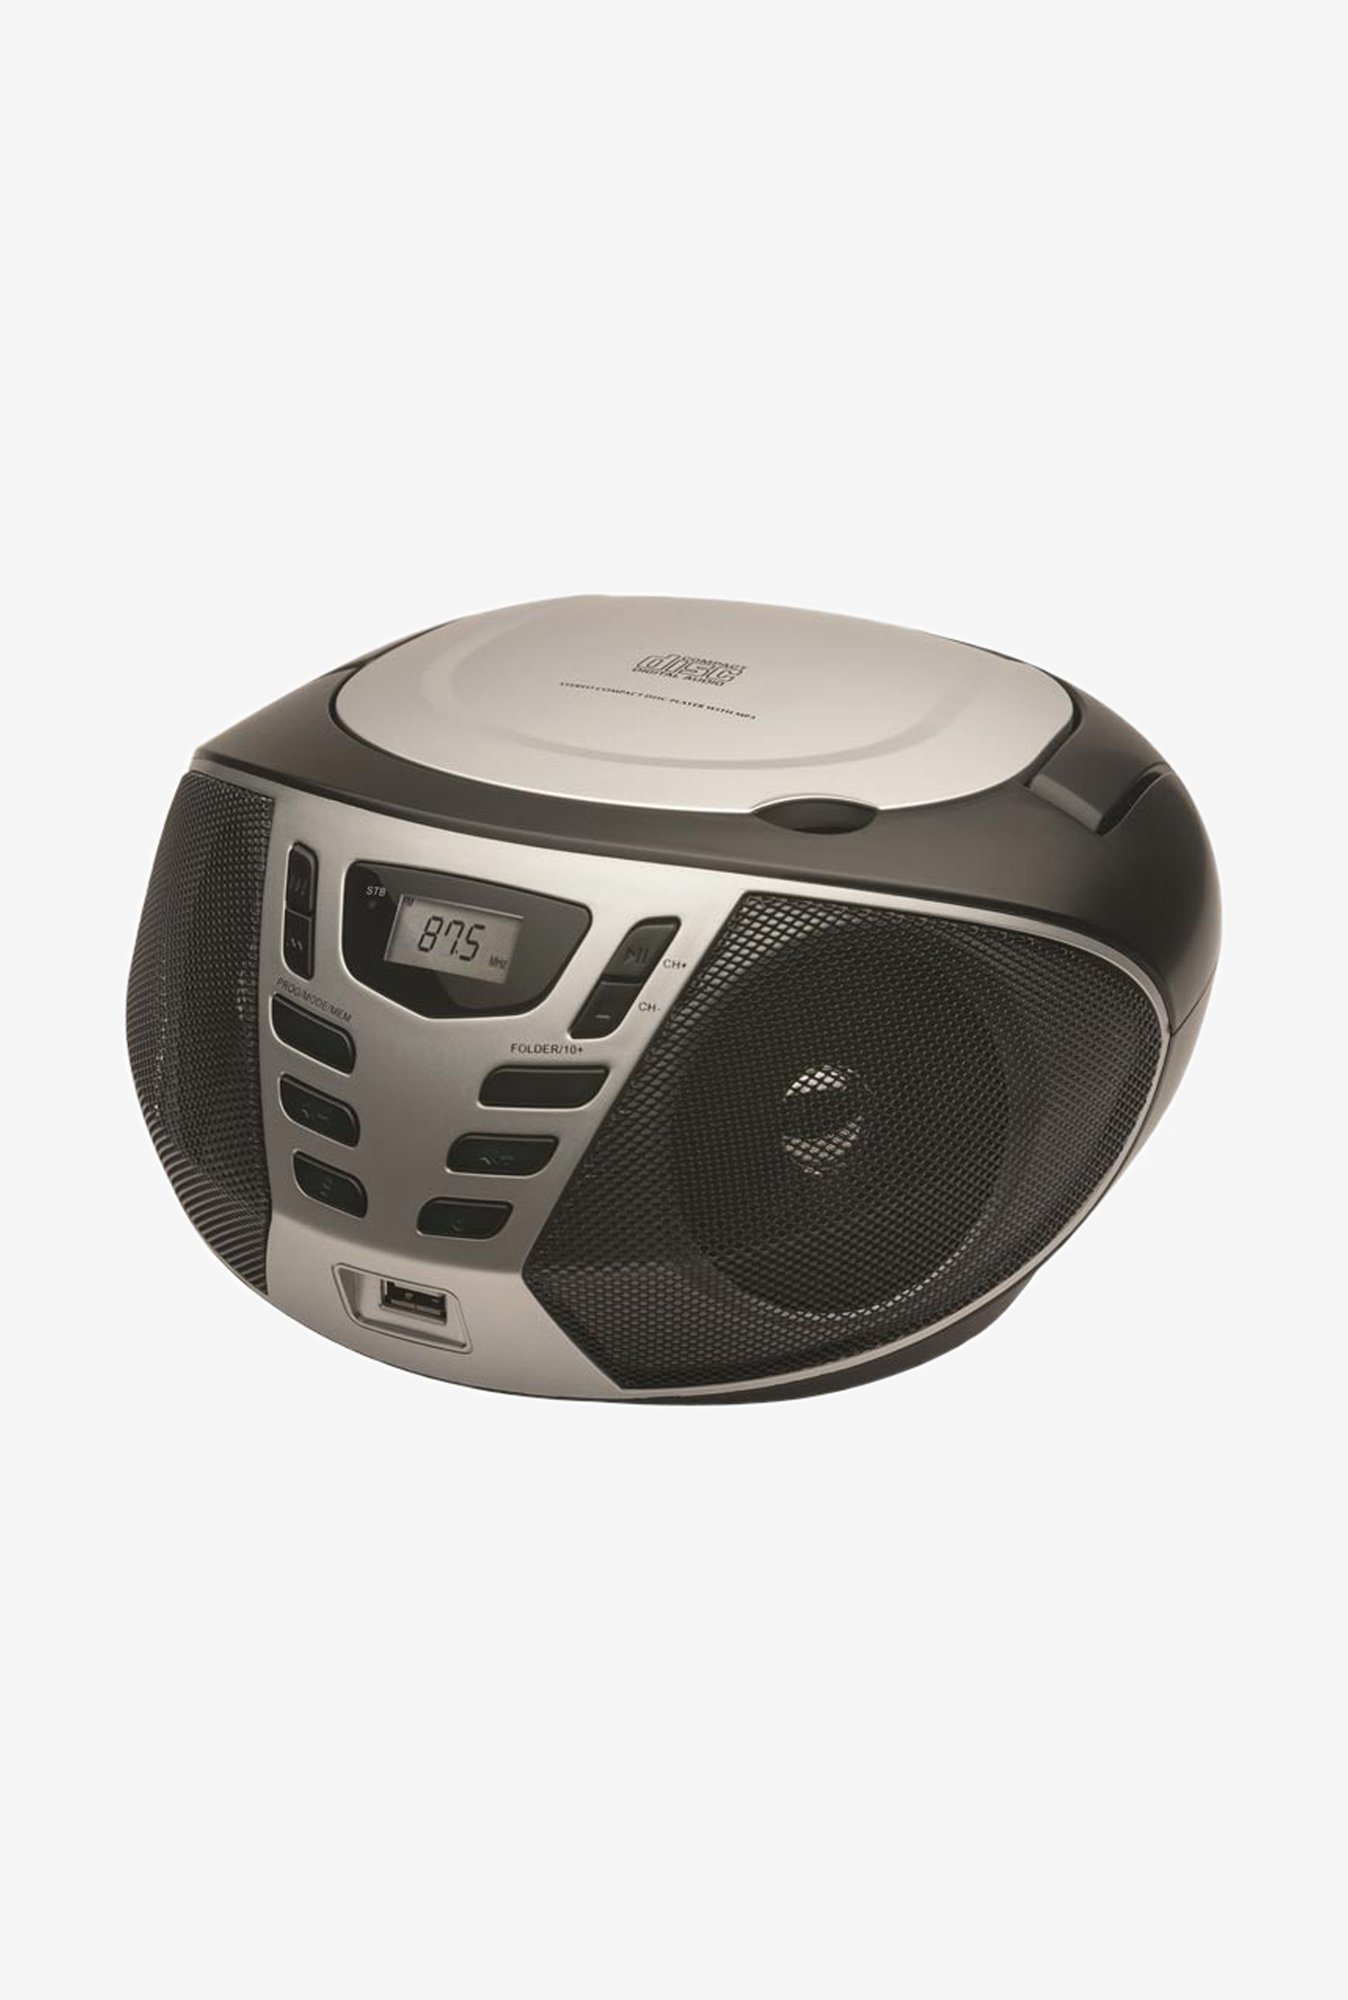 Croma Boombox CD/MP3/USB/RADIO EY3020